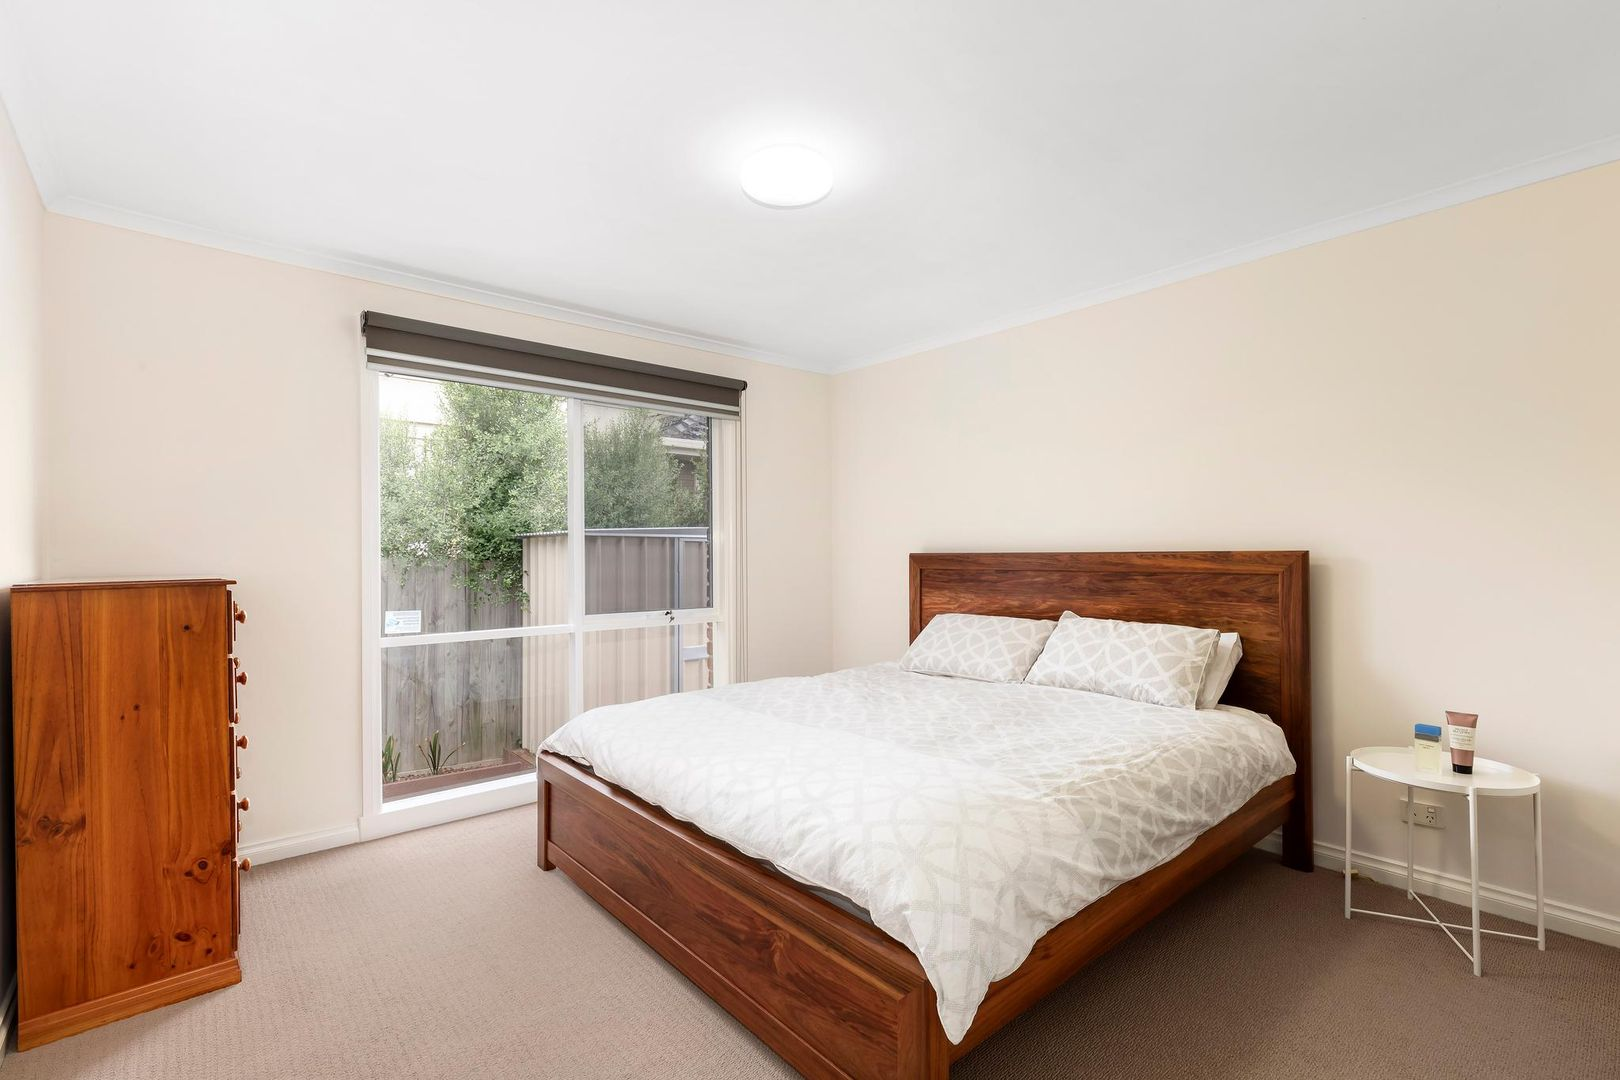 2/11 Hanover Road, Vermont South VIC 3133, Image 2